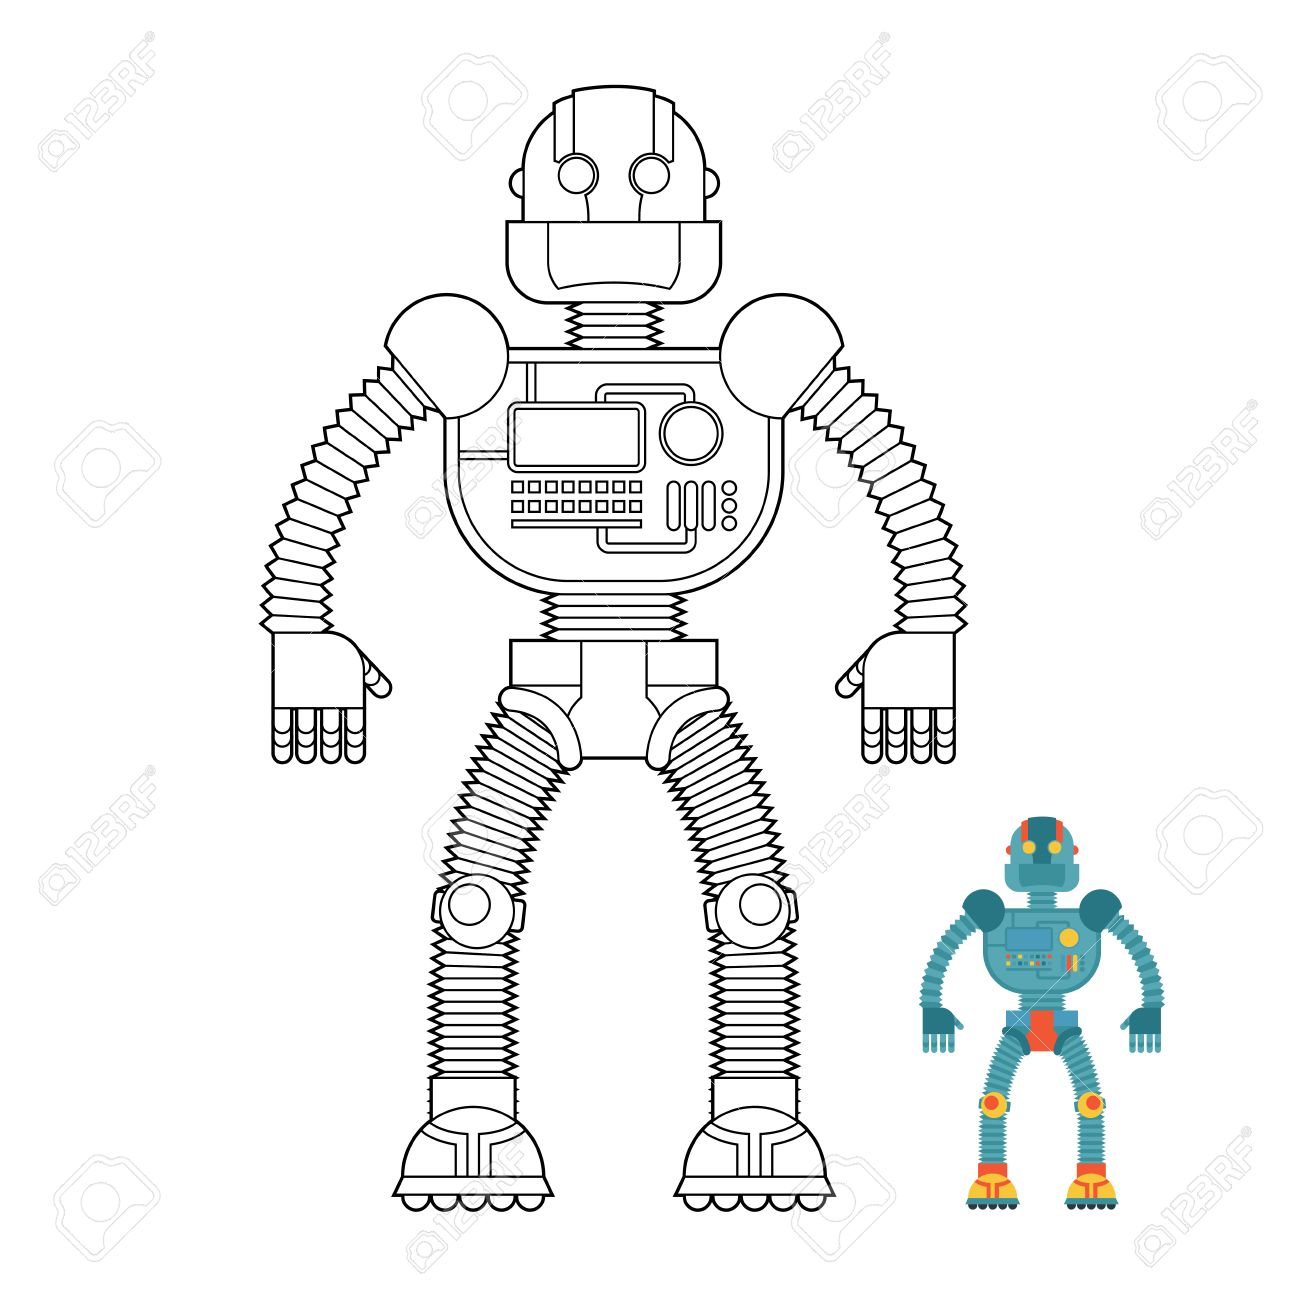 Robot Coloring Book. Cyborg - Technological Machine. Humanoid ...